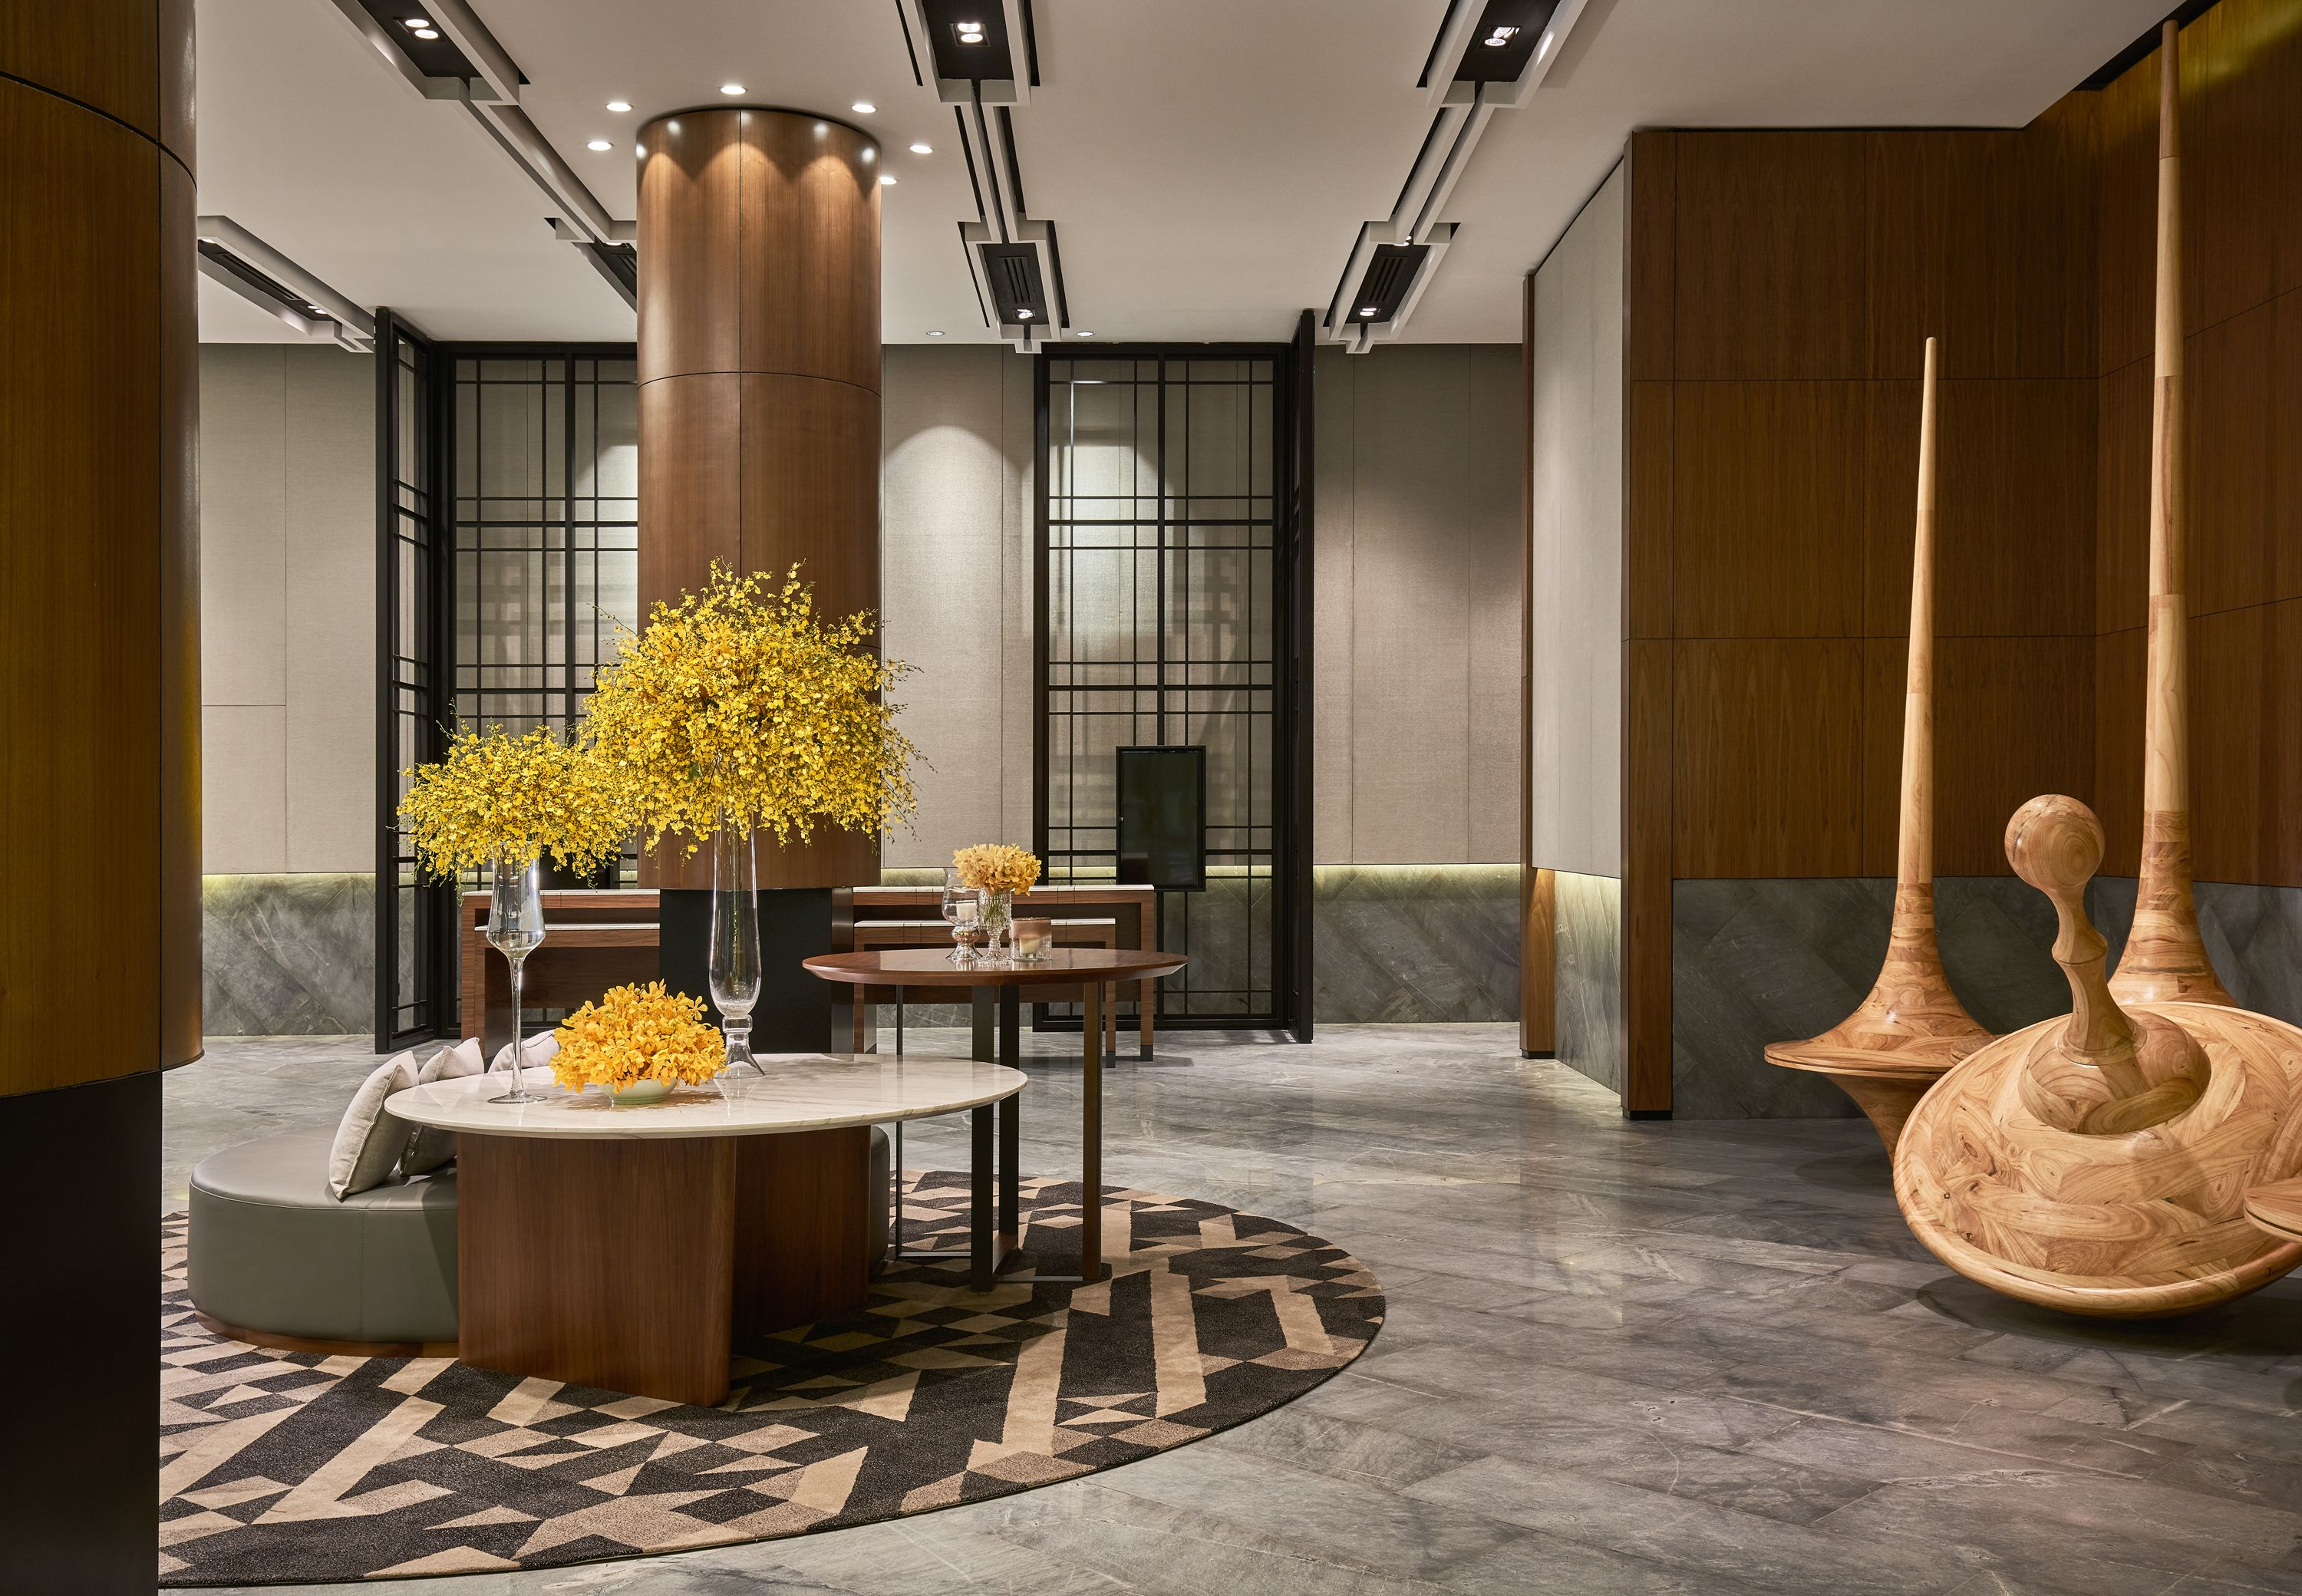 Pin by 佩儀 吳 on lobby pinterest timber cladding lobbies and